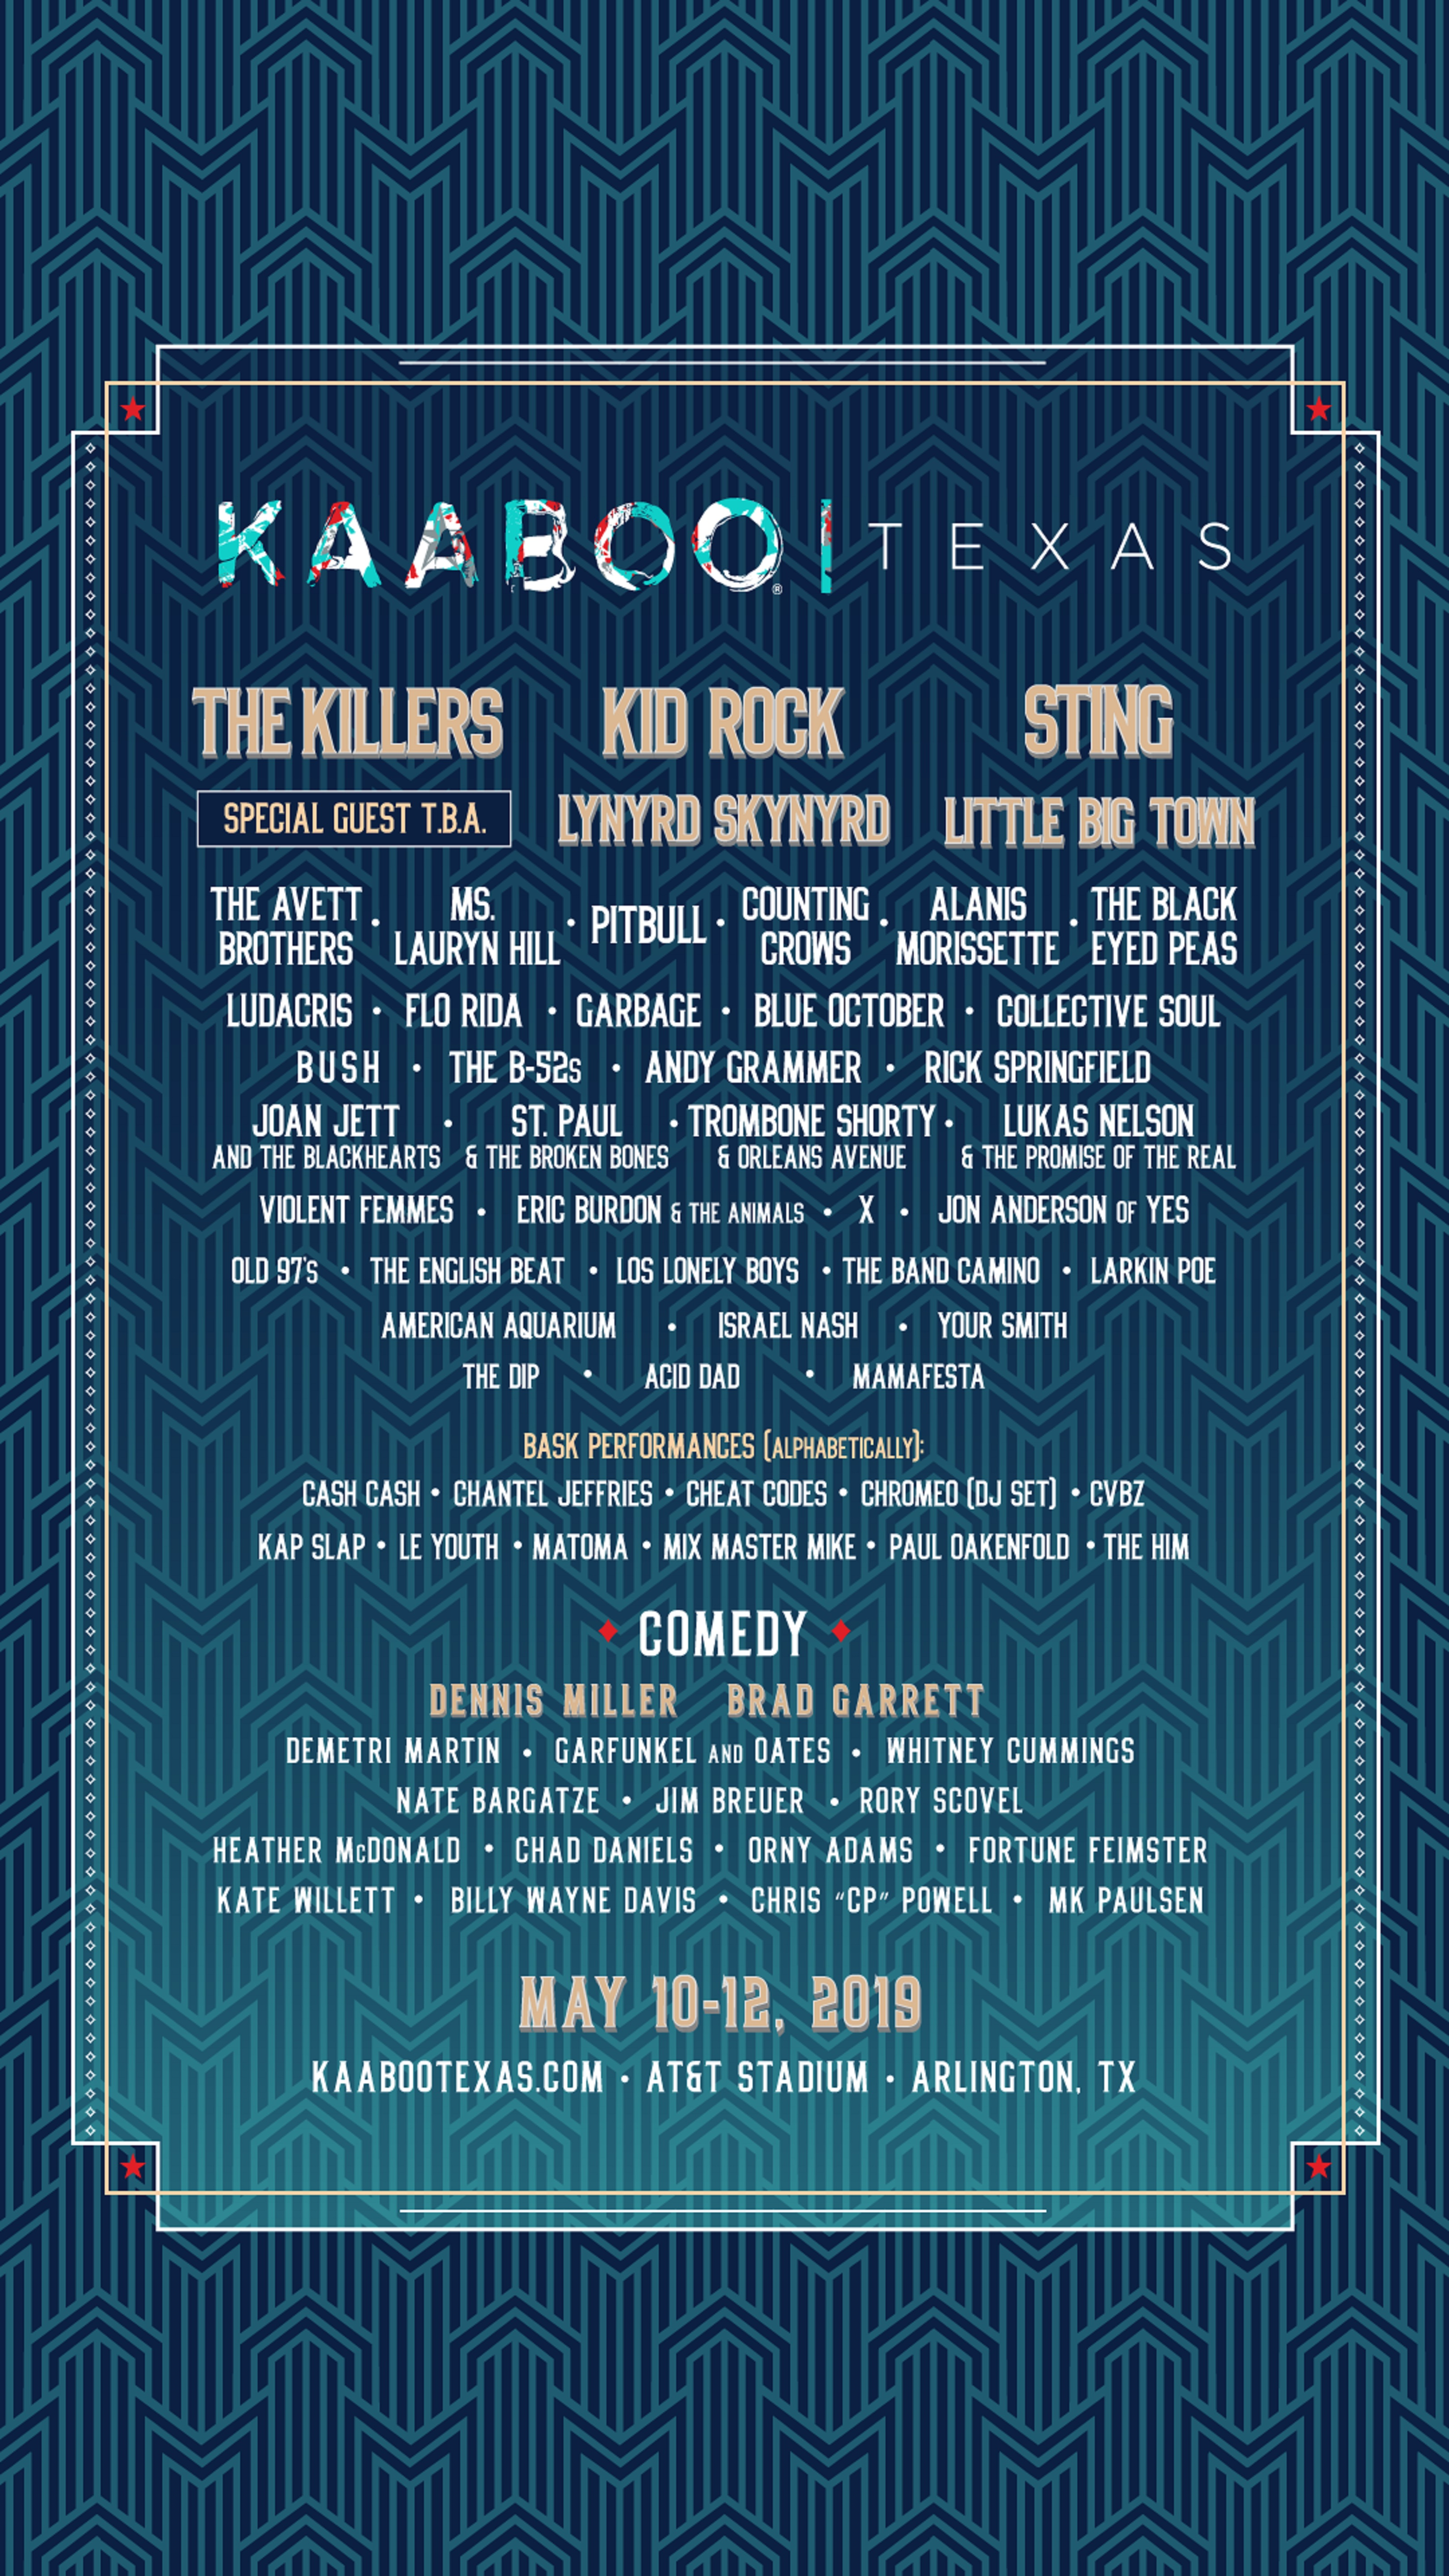 KAABOO TEXAS DEBUTS ON MAY 10-12, 2019